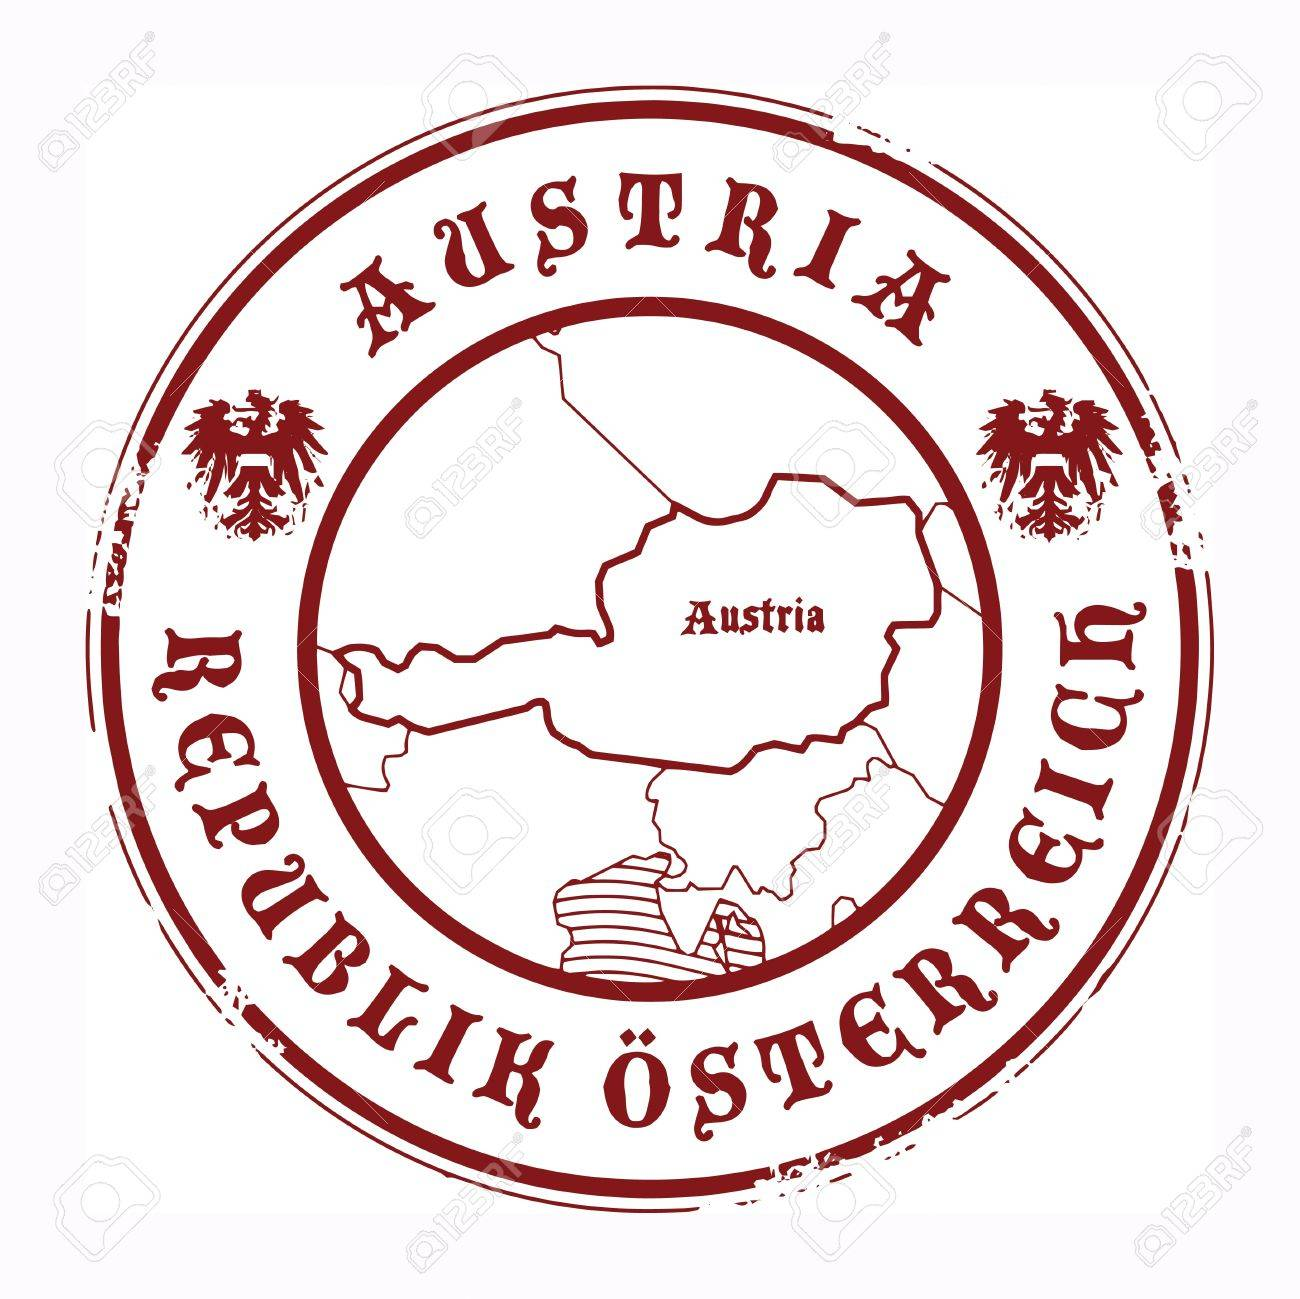 Grunge rubber stamp with the name and map of Austria Stock Vector - 18570690